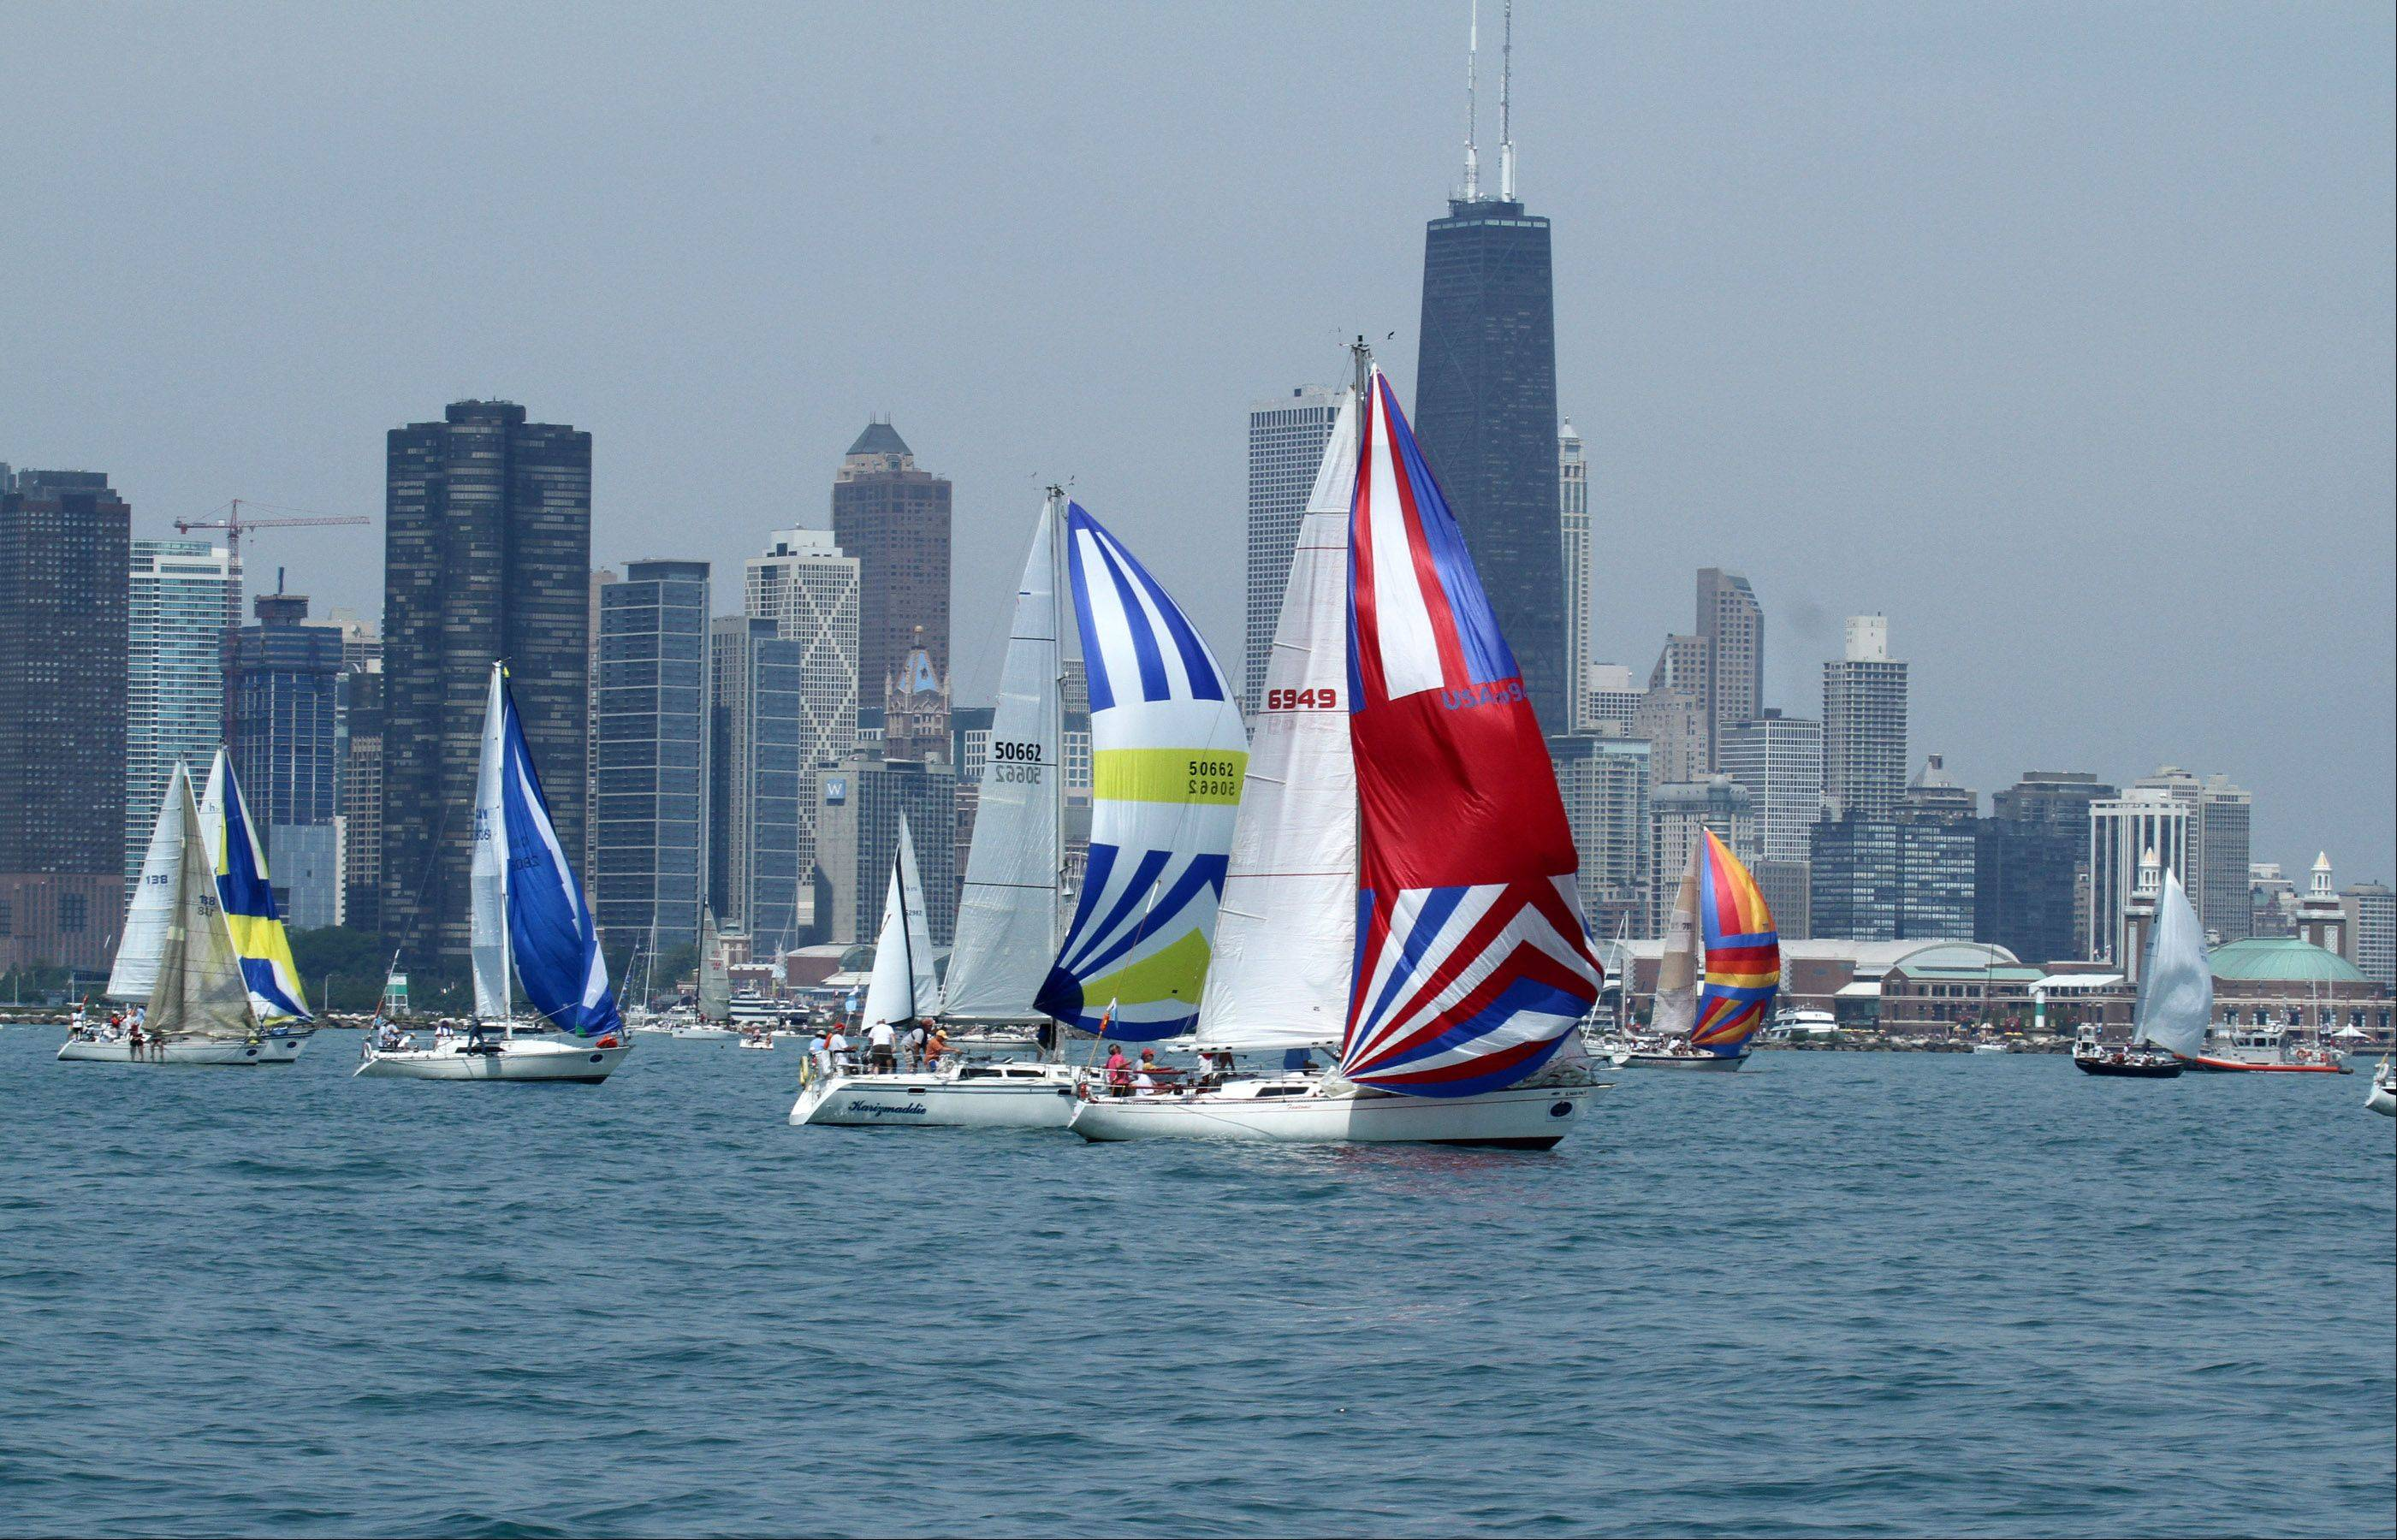 Sailboats lead by Fantome, right front, USA 6949, owned by Deirdre Martin, of Chicago, with Chicago Yacht Club, at the start of the 104th Chicago Yacht Club Race to Mackinac on Lake Michigan pass Navy Prier in Chicago on Saturday, July 21.